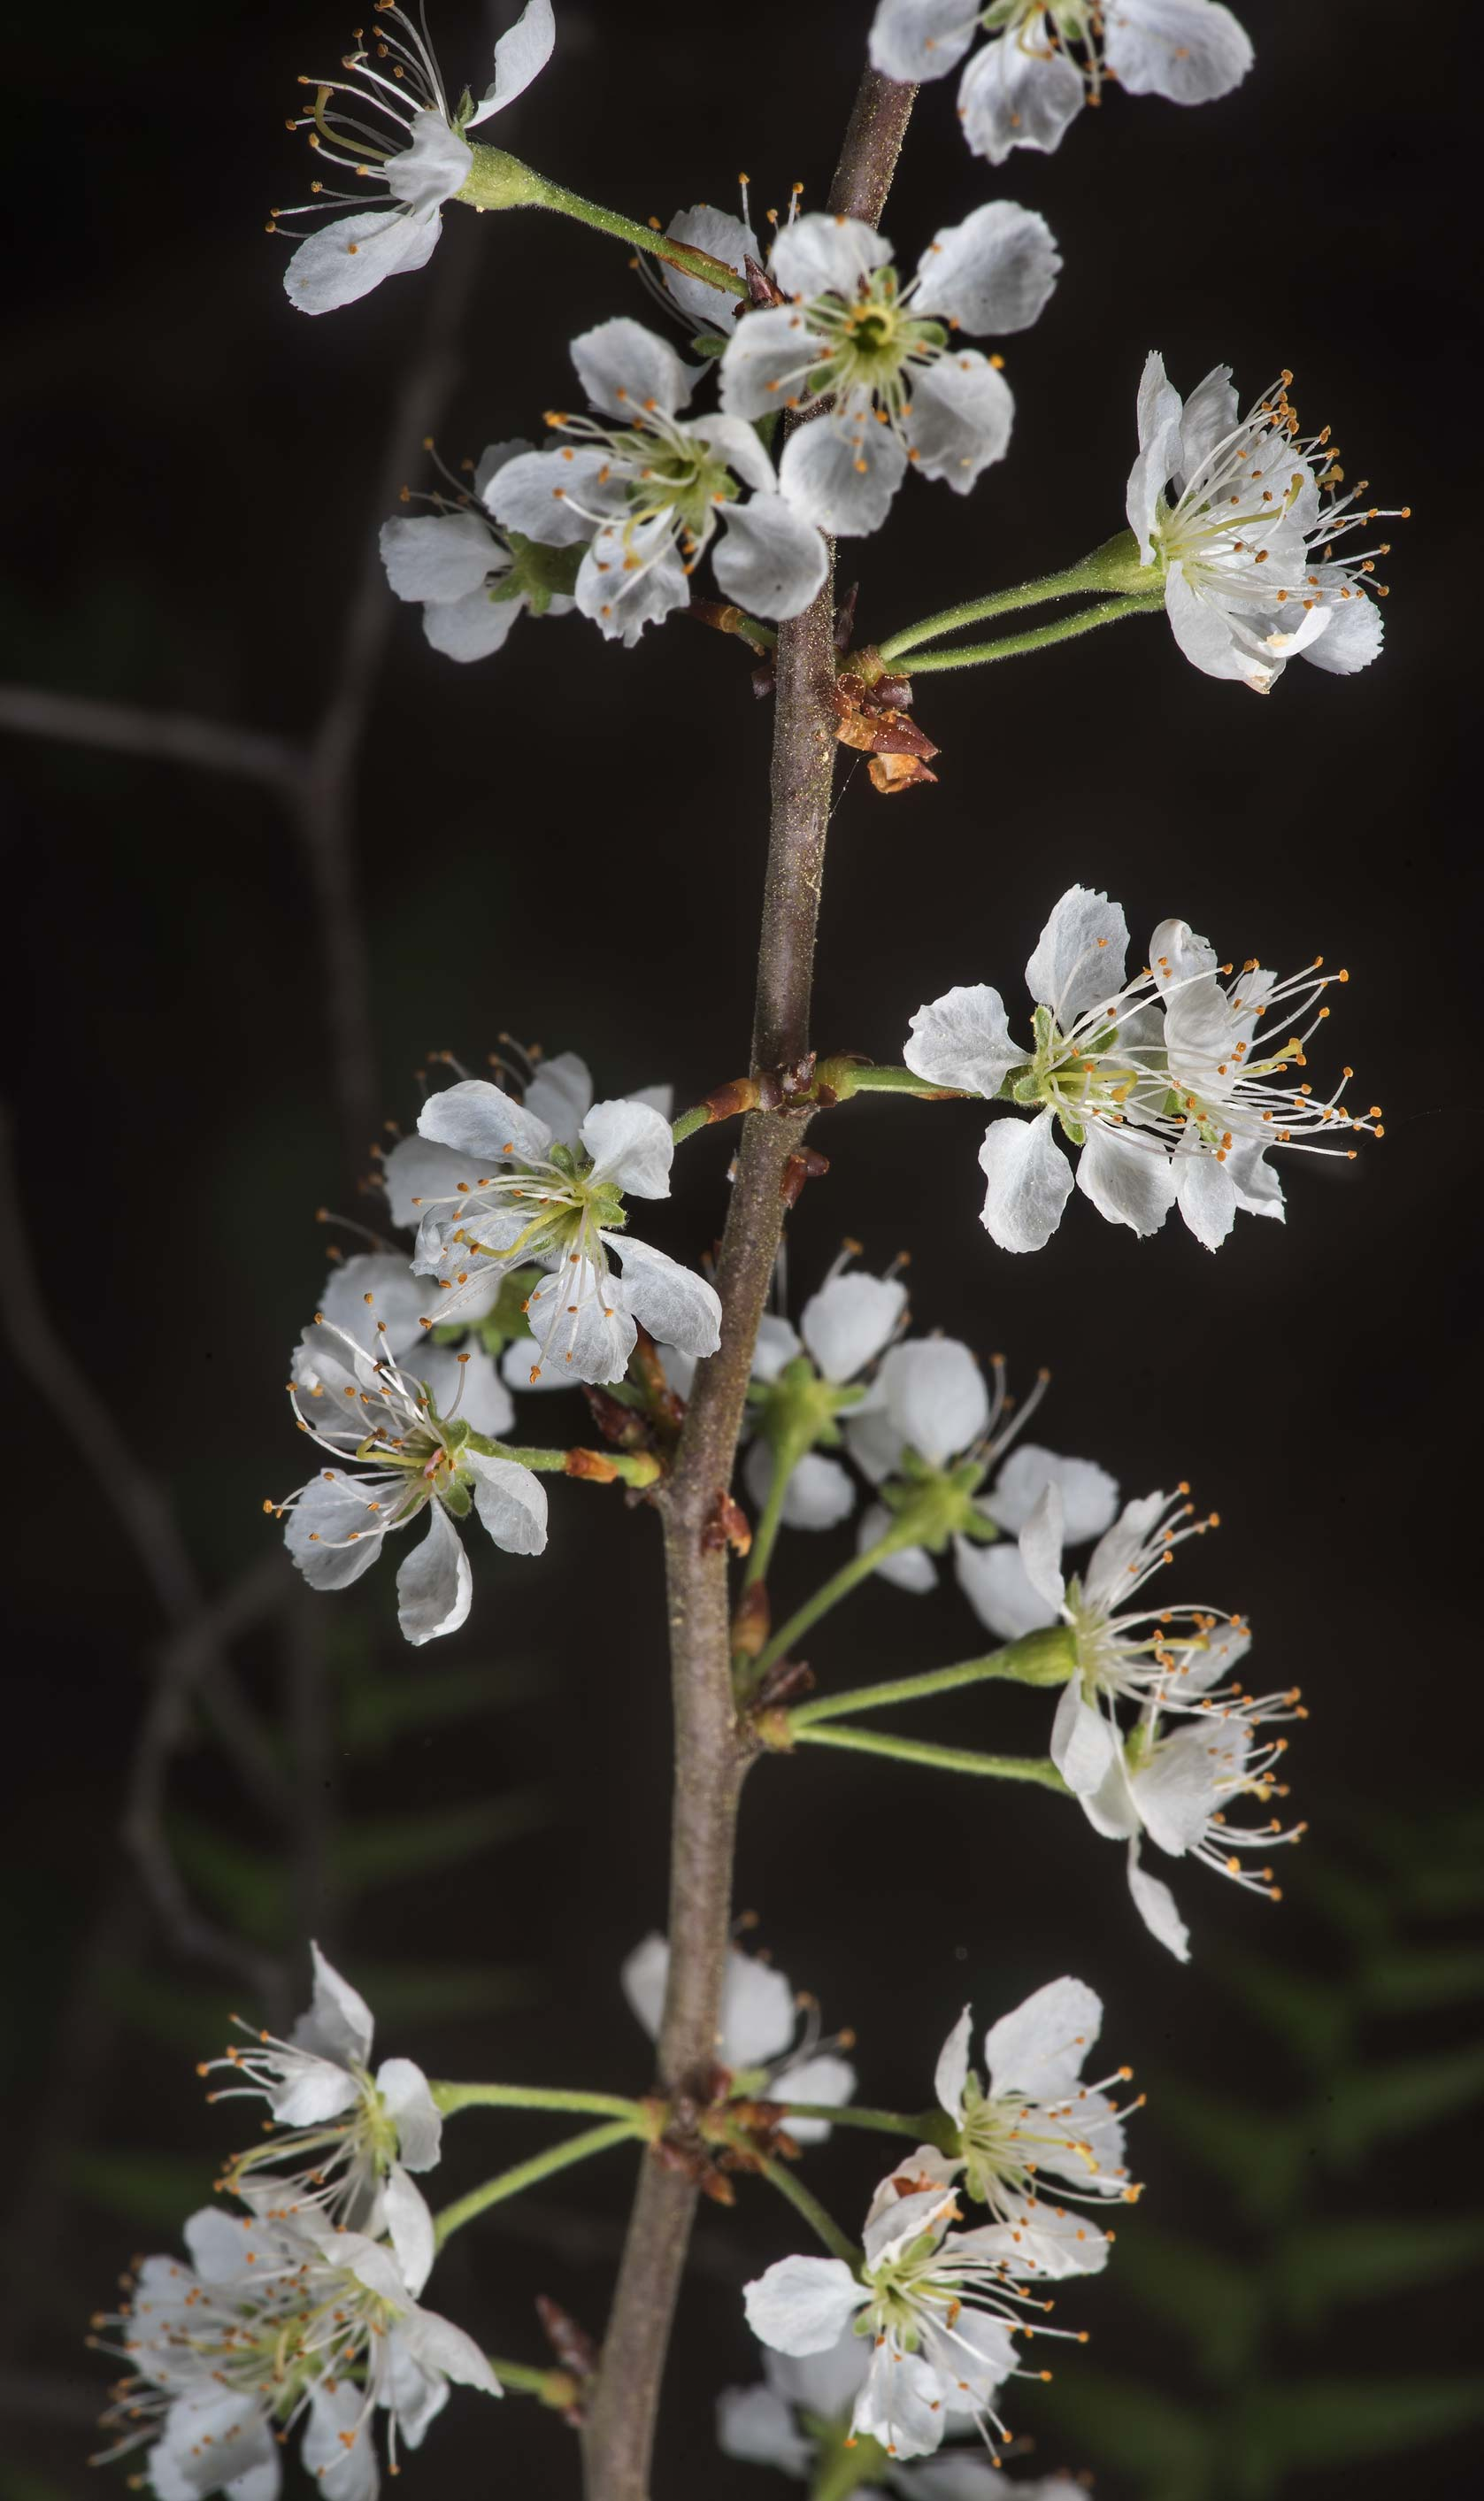 Blooming hawthorn on Richards Loop Trail in Sam Houston National Forest. Texas